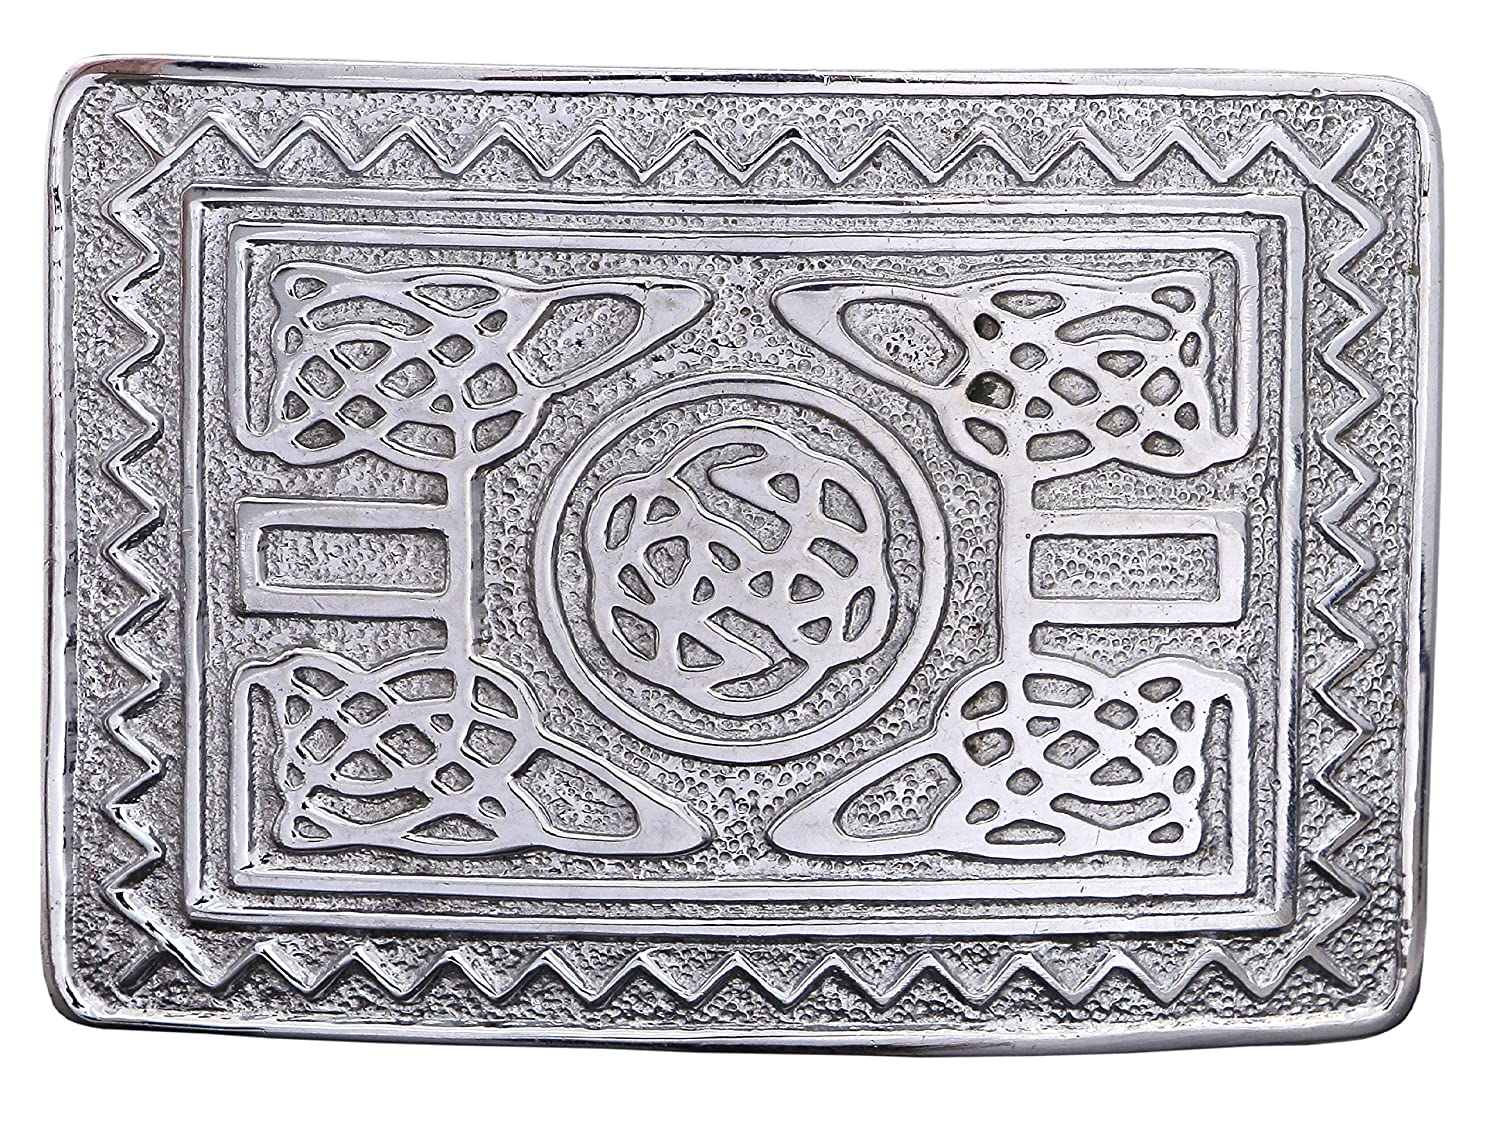 MENS SCOTTISH KILT BELT BUCKLES CHROME BUCKLES 5000-09